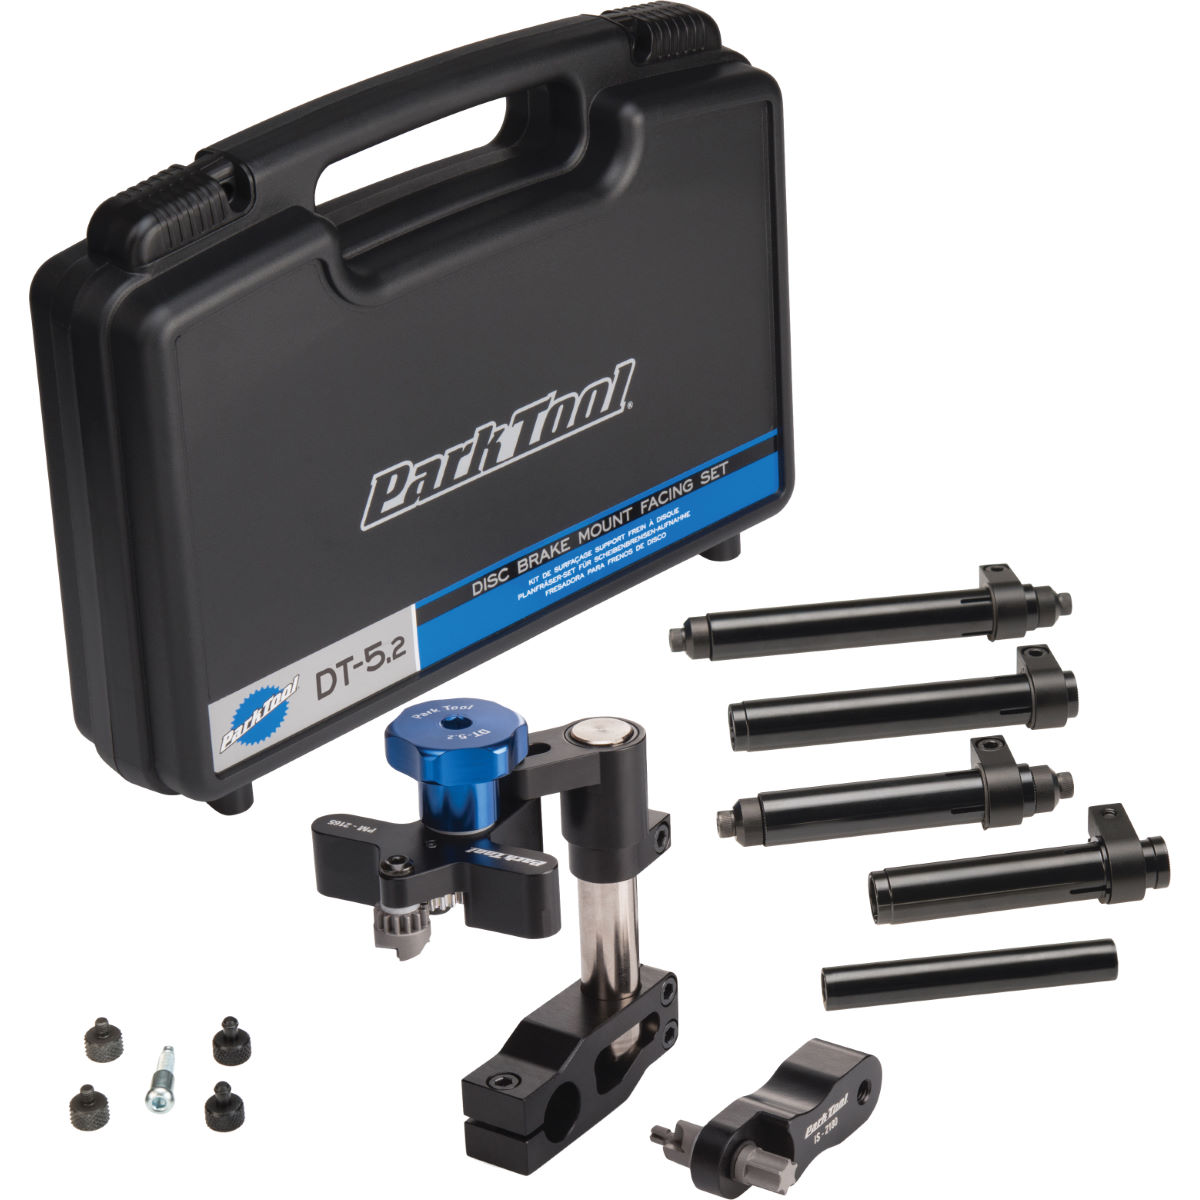 Park Tool Park Tool Disc Brake Mount Facing Set DT-5.2   Tool Sets